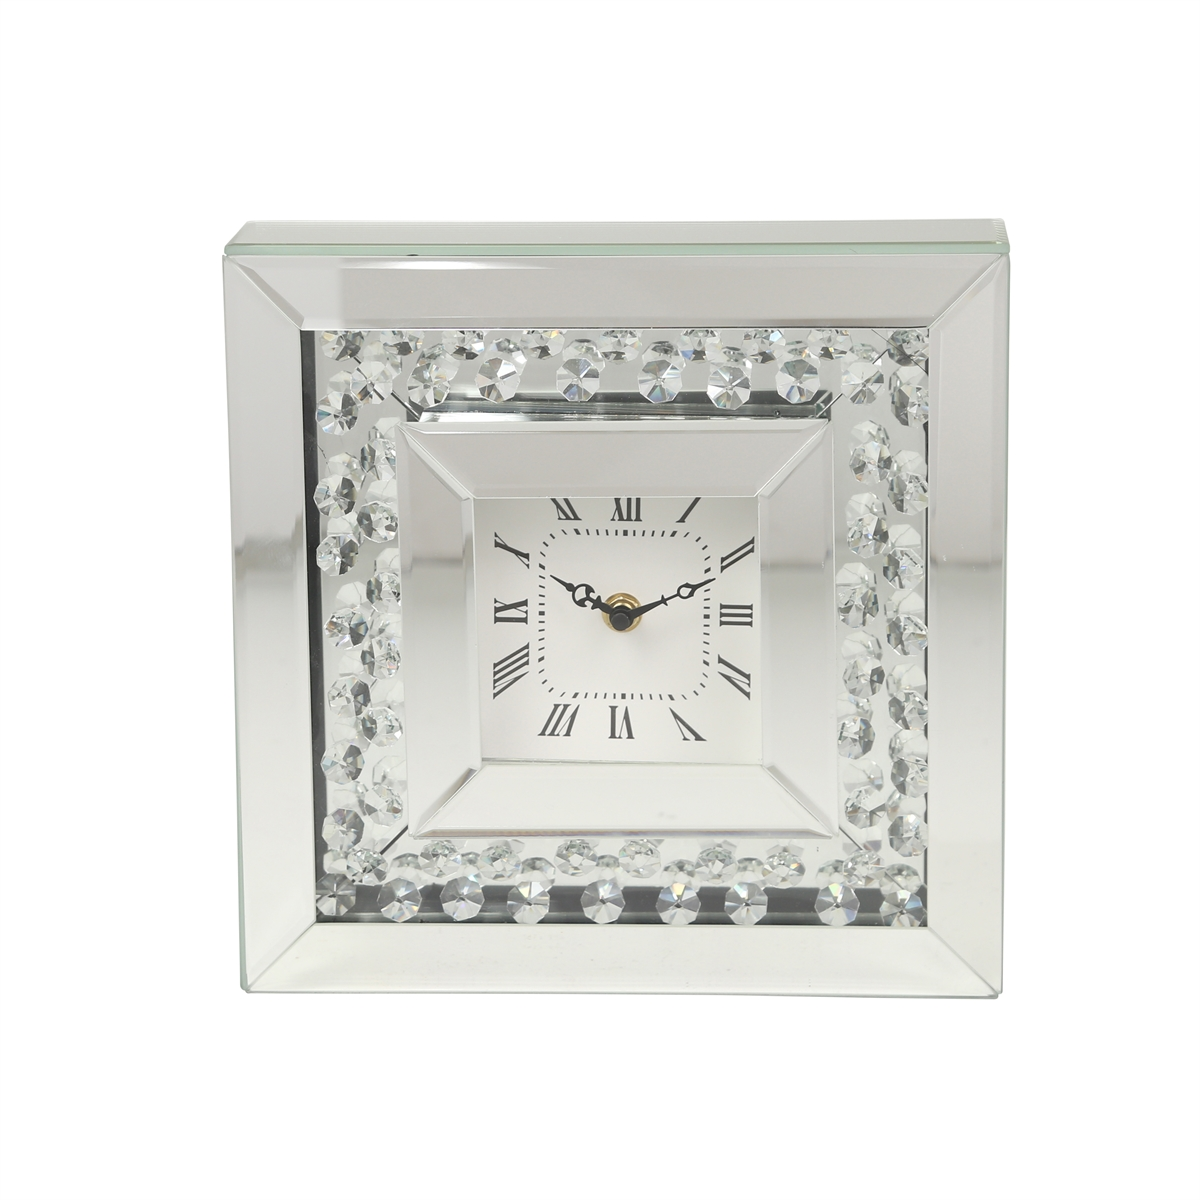 square mirrored diamond clock sagebrook home accent table furniture for entrance foyer round dark wood end west elm pillar lamp linens tall glass tables light colored design